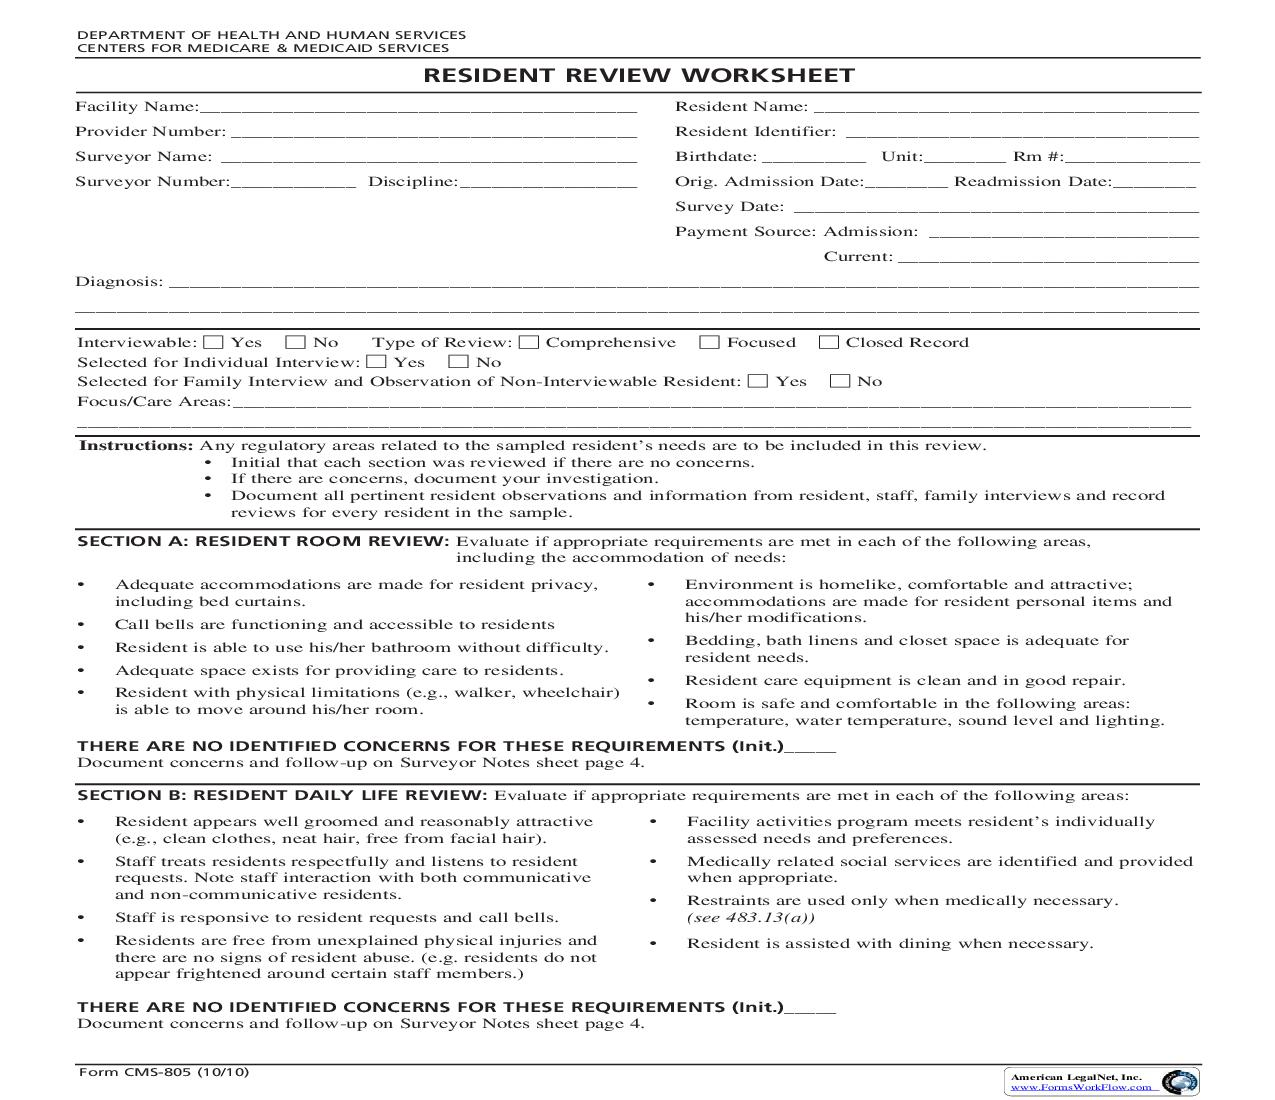 Resident Review Worksheet {CMS-805} | Pdf Fpdf Doc Docx | Official Federal Forms